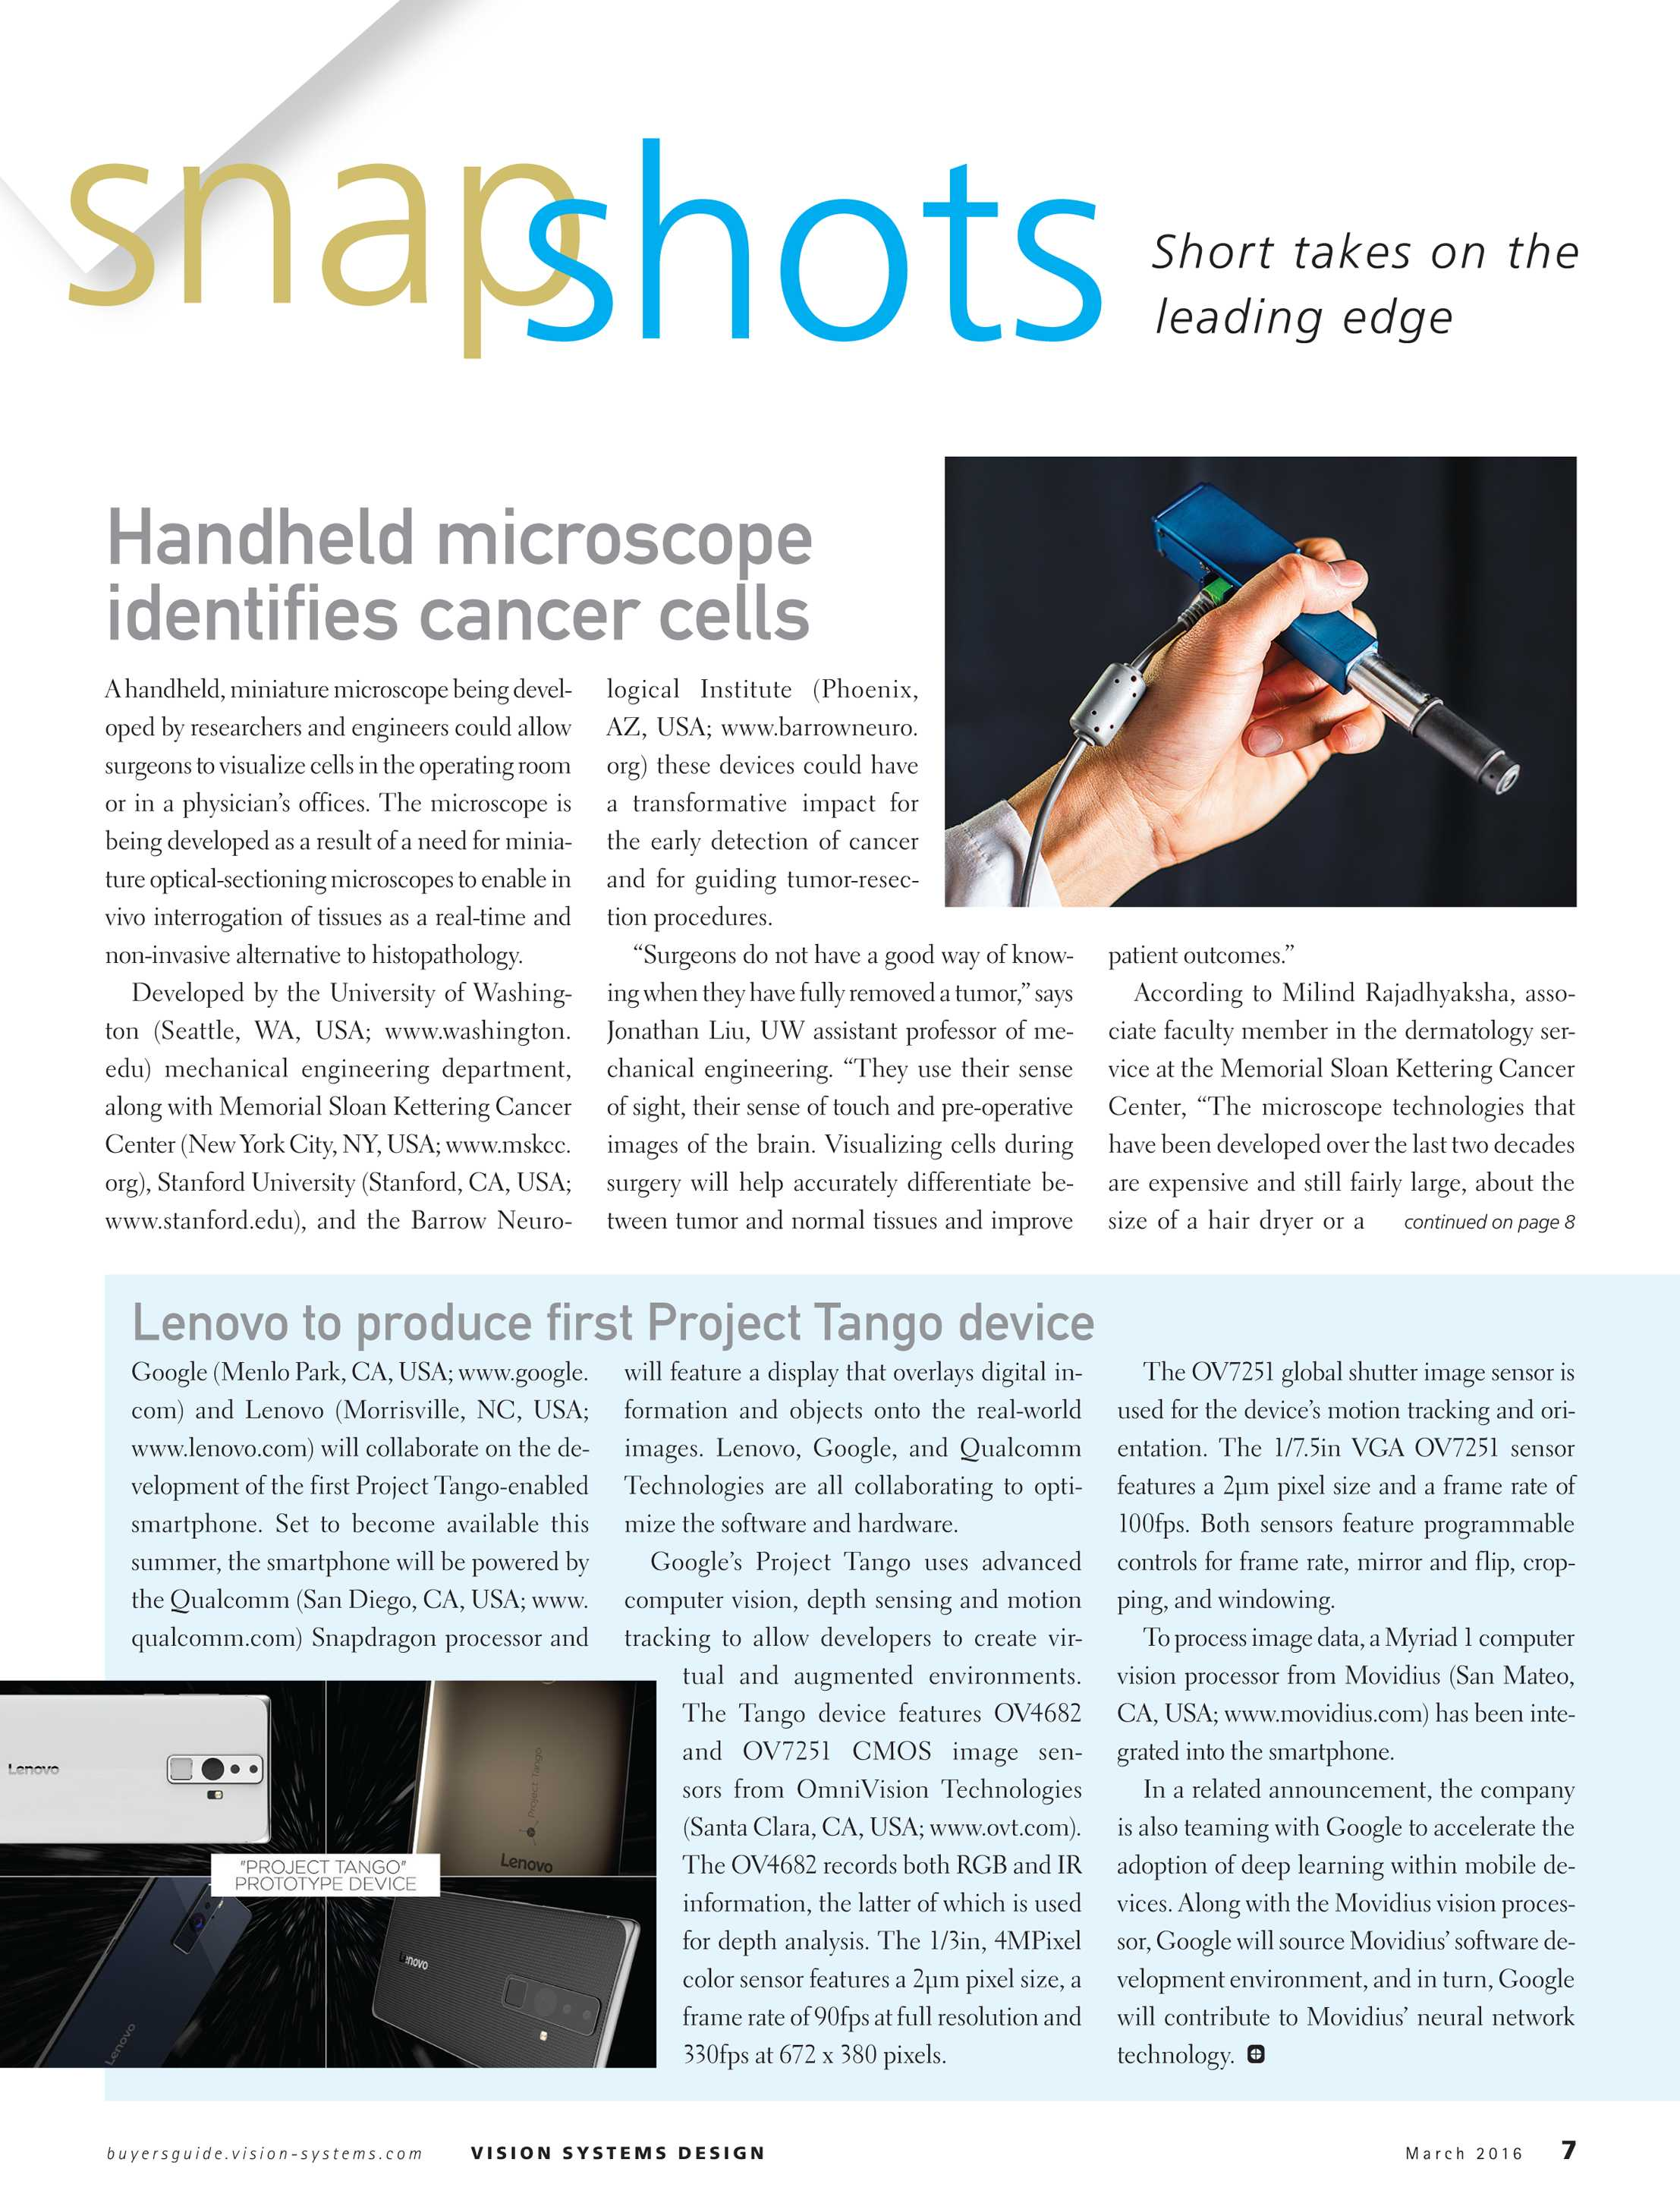 Vision Systems - March 2016 - page 7